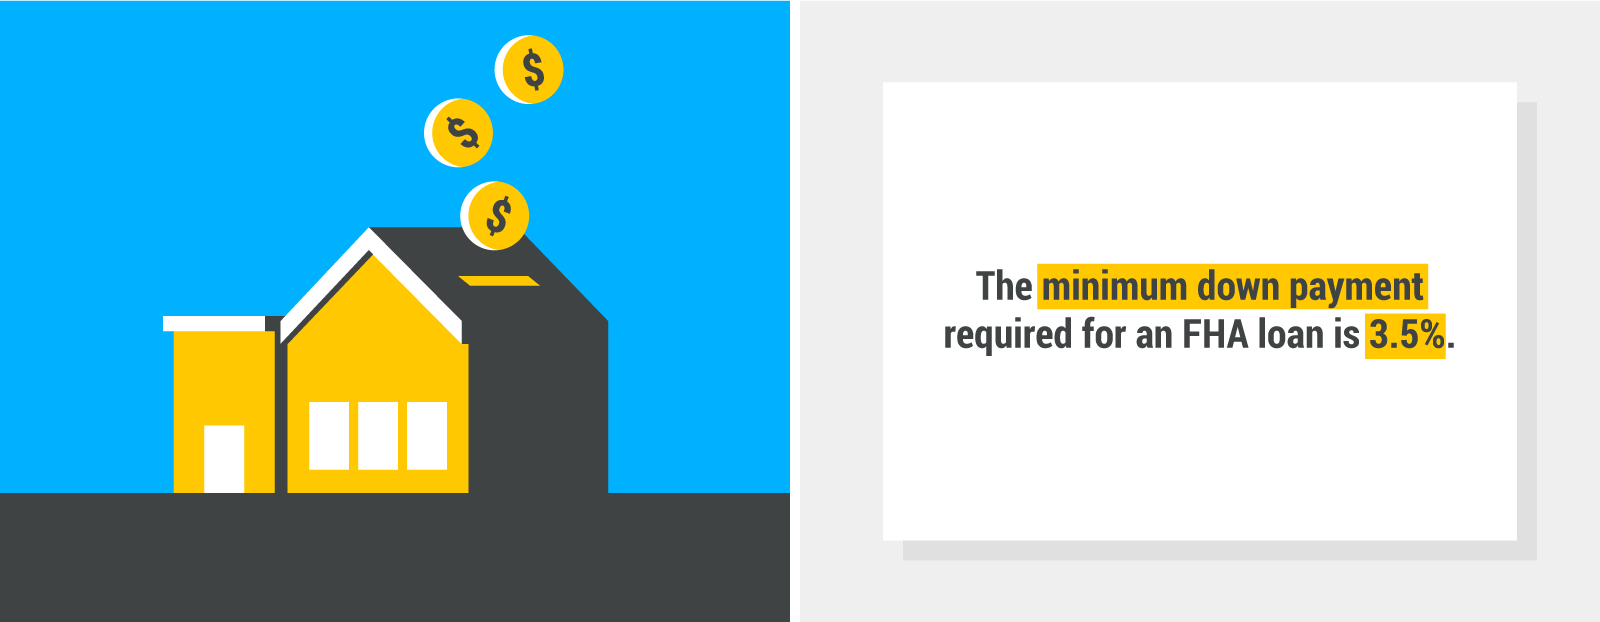 The minimum downpayment required for an FHA loan is 3.5%